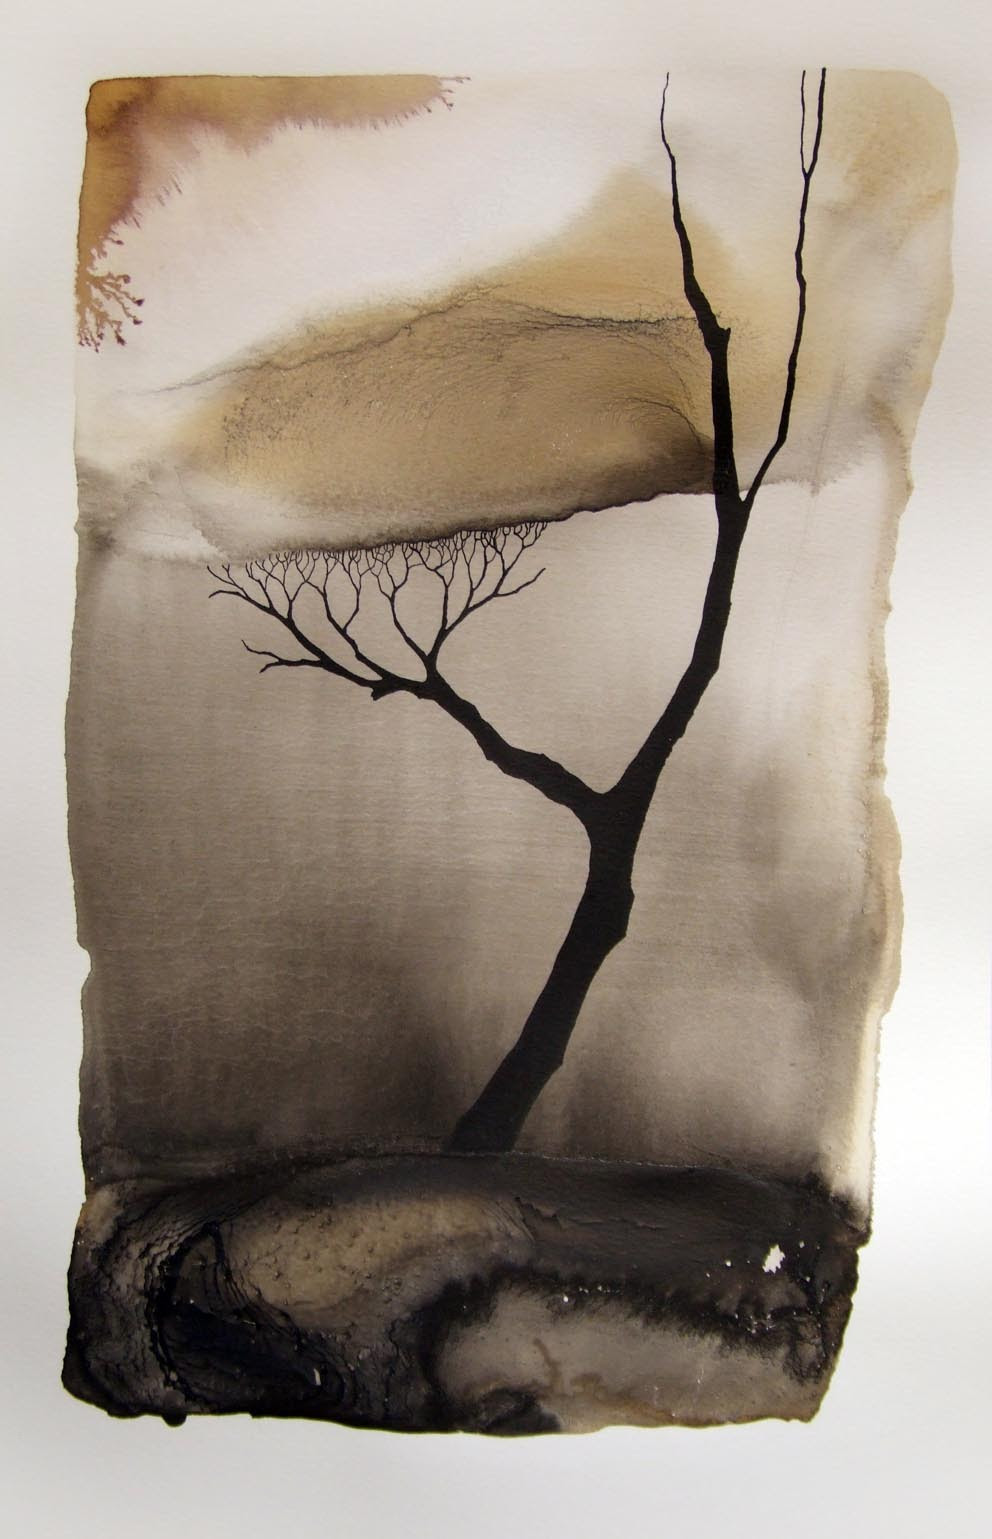 Pablo S. Herrero: Images of drought Chinese ink and white clay on paper